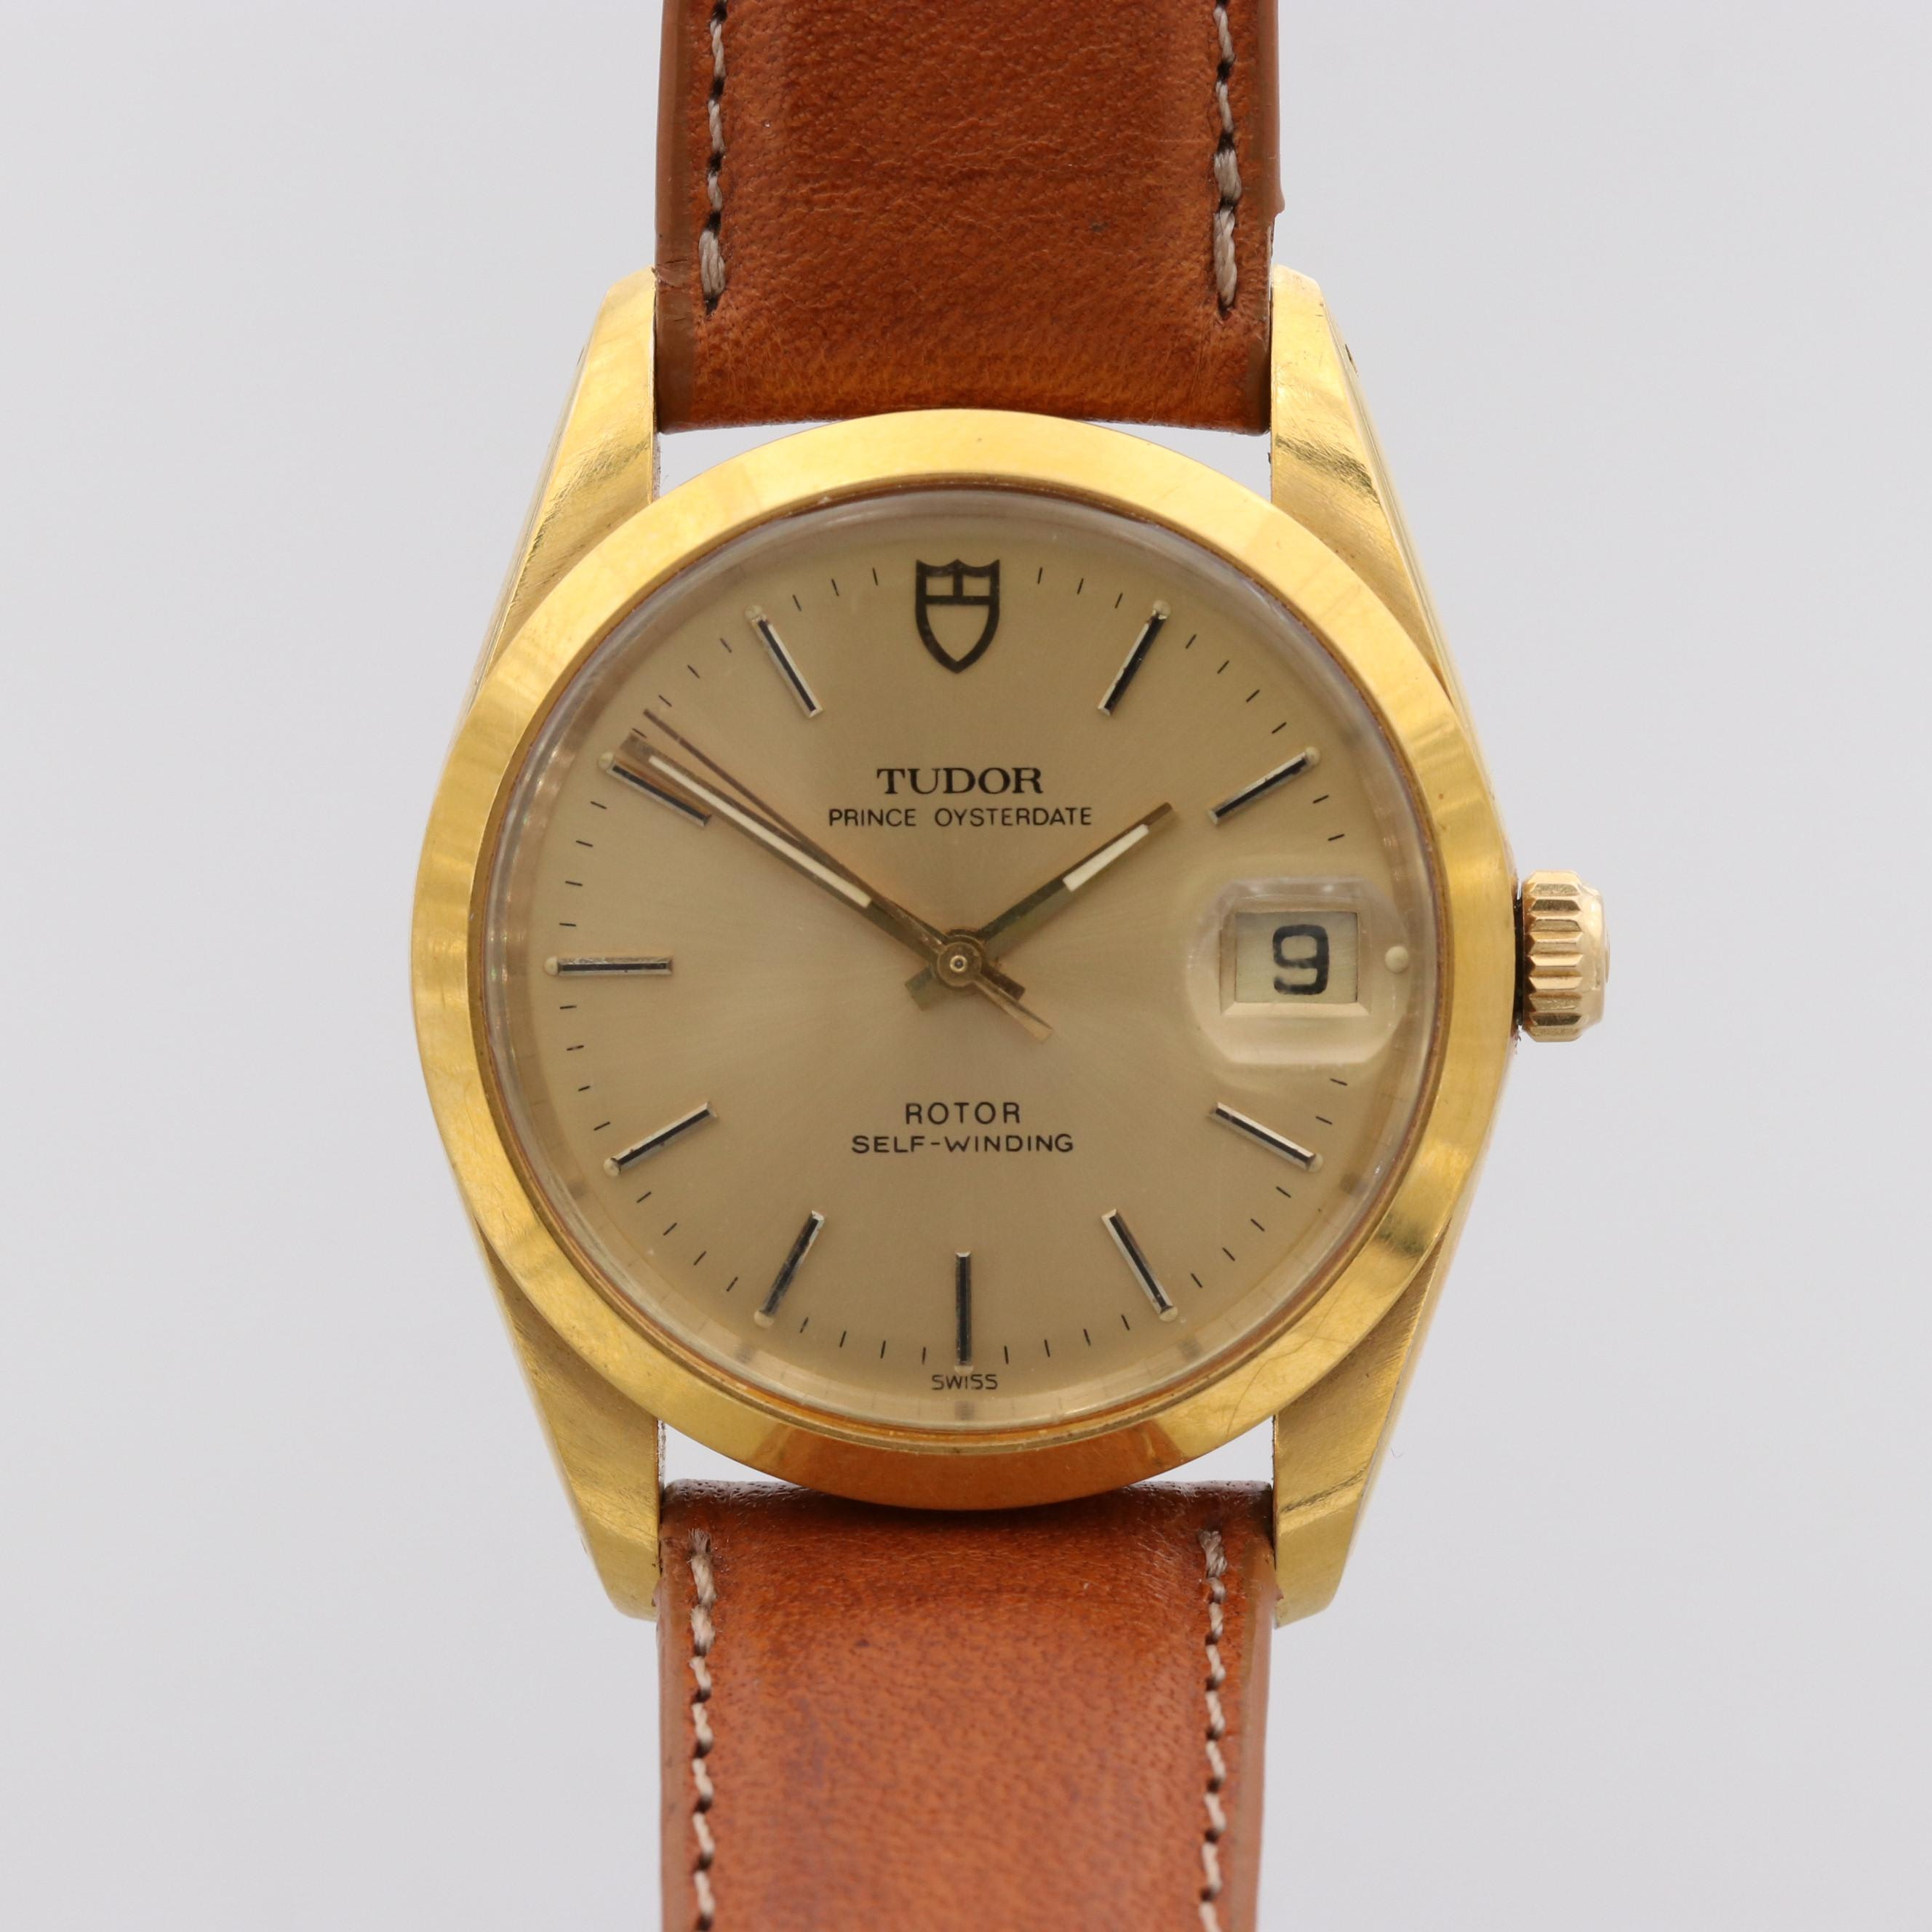 Tudor Prince Oyster Date Gold Tone Stainless Steel Automatic Wristwatch